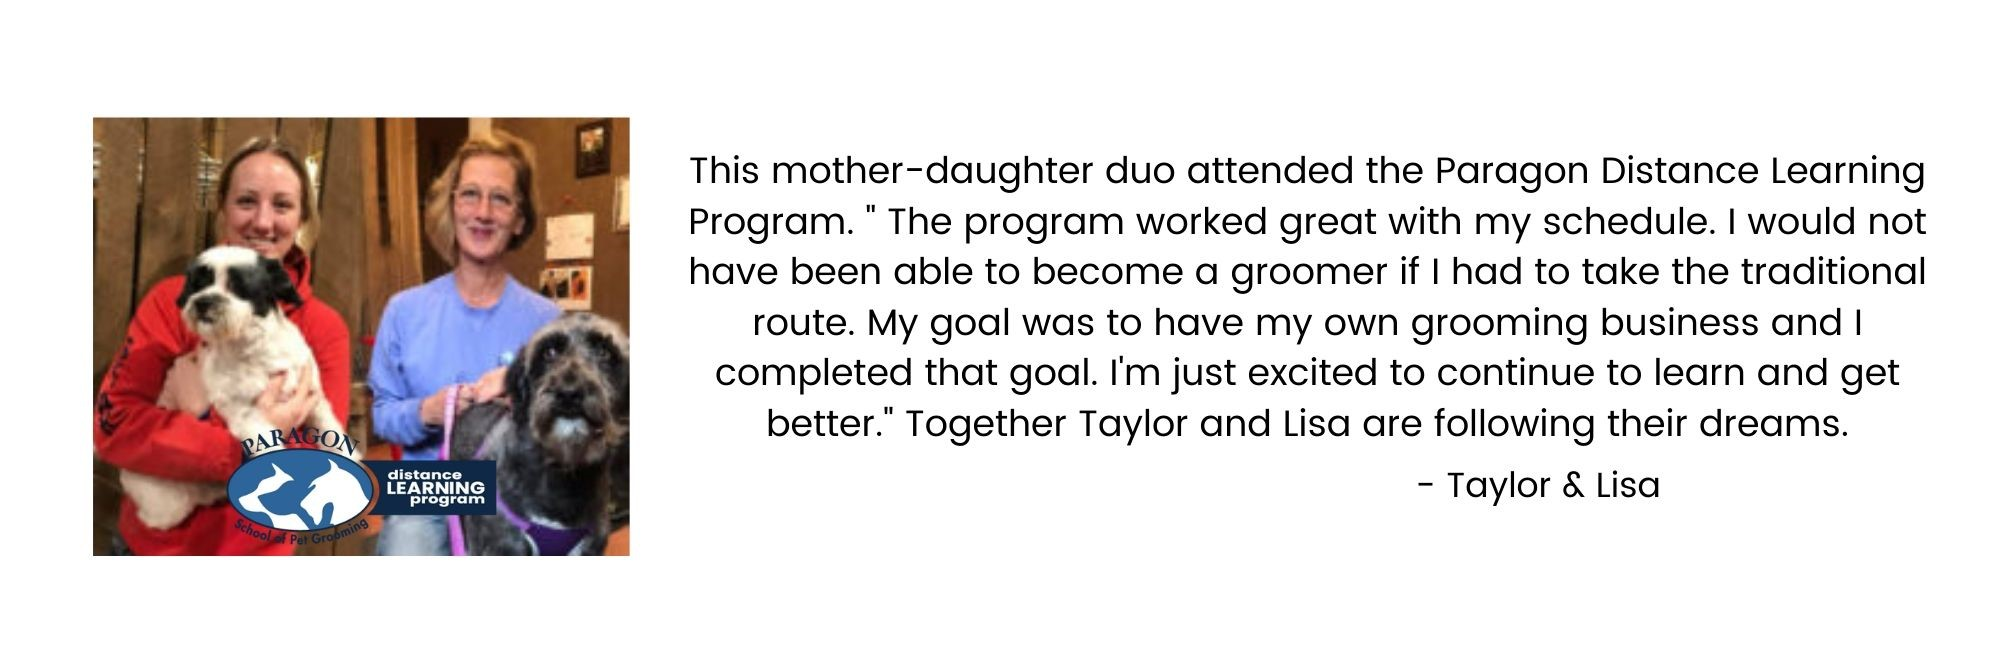 Taylar and Lisa's Paragon Distance Learning Success Story